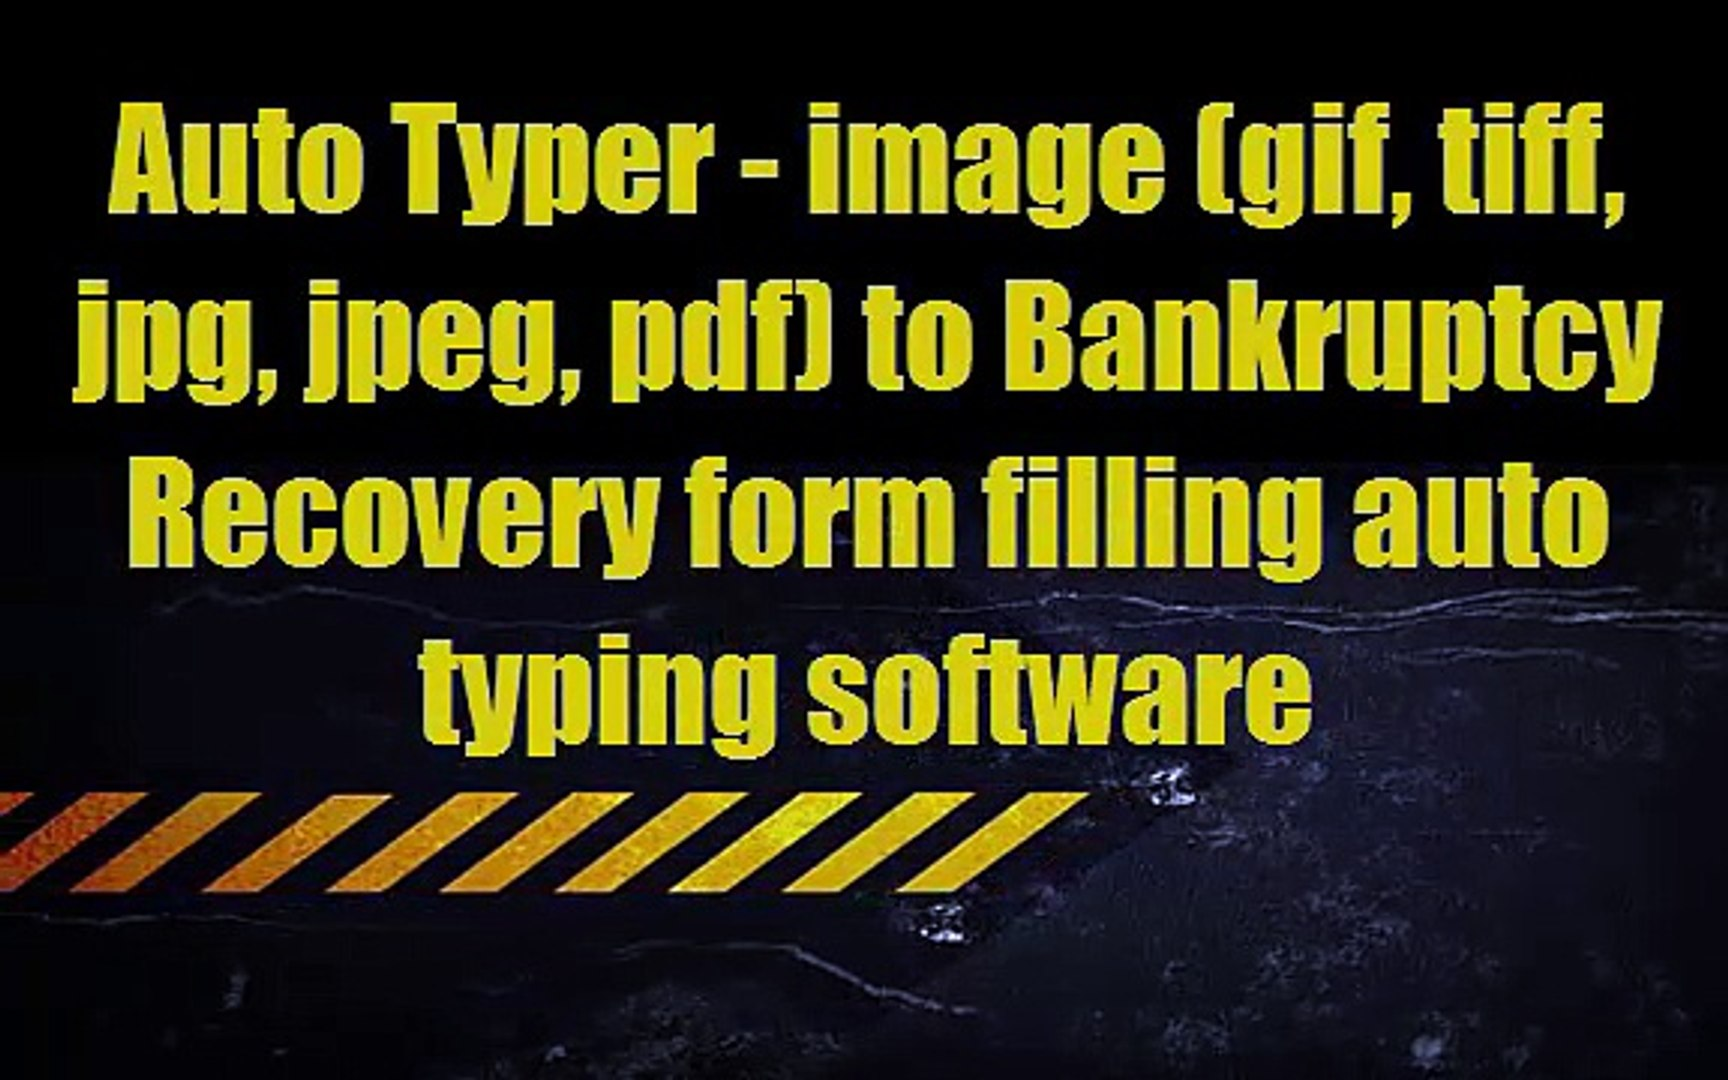 Auto Typer - image (gif, tiff, jpg, jpeg, pdf) to bankruptcy Recovery form  filling auto typing software